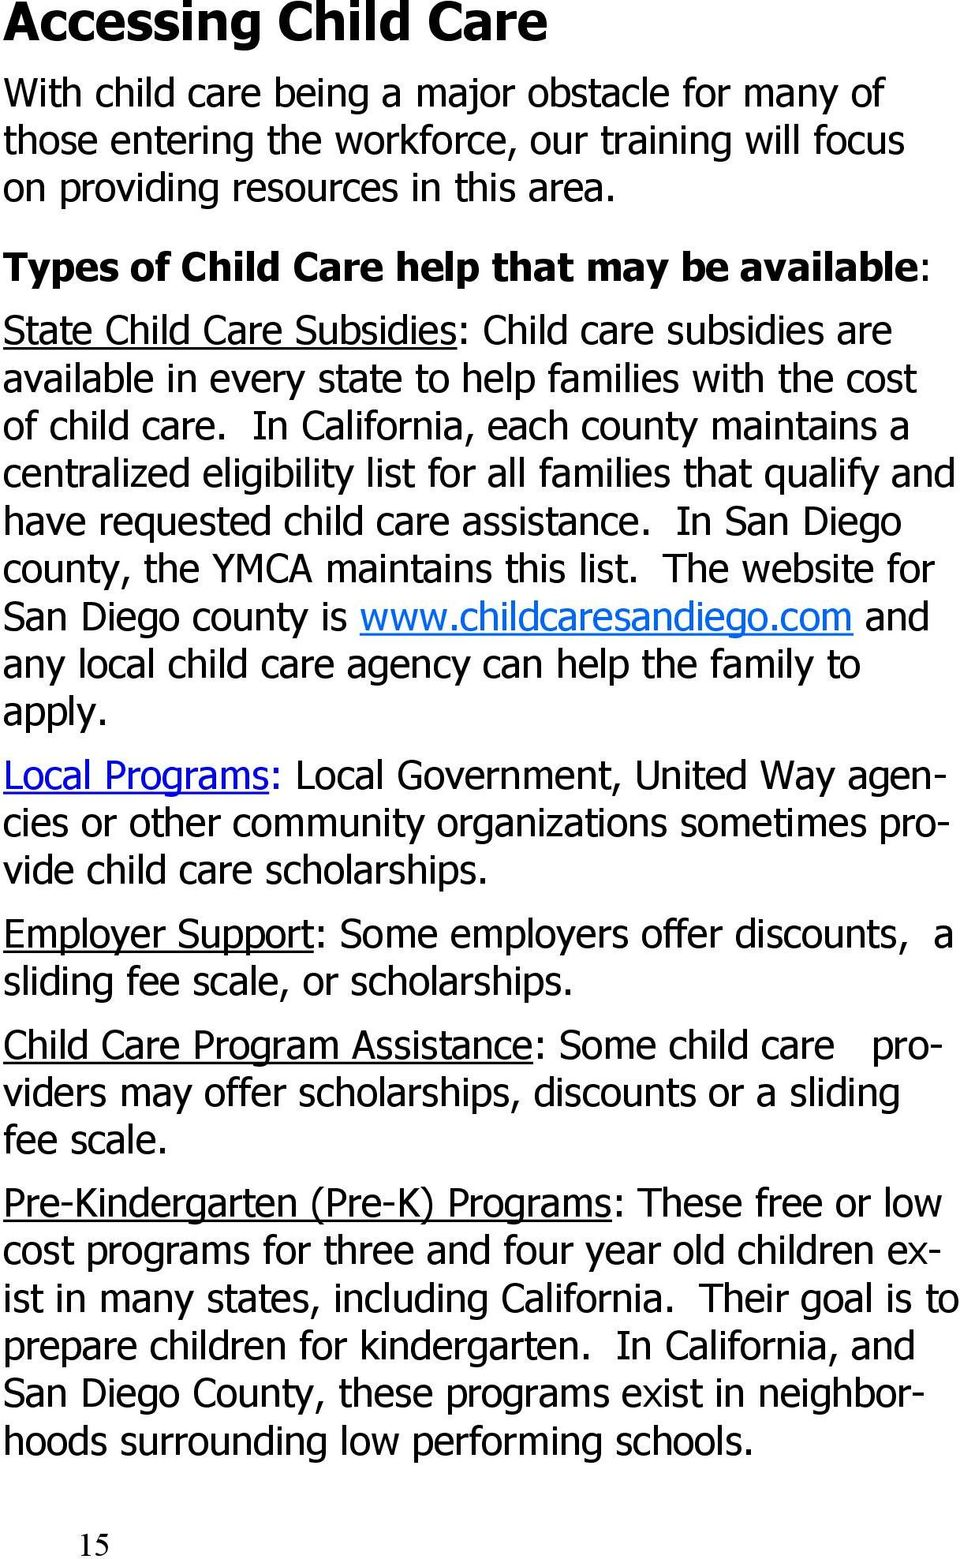 In California, each county maintains a centralized eligibility list for all families that qualify and have requested child care assistance. In San Diego county, the YMCA maintains this list.